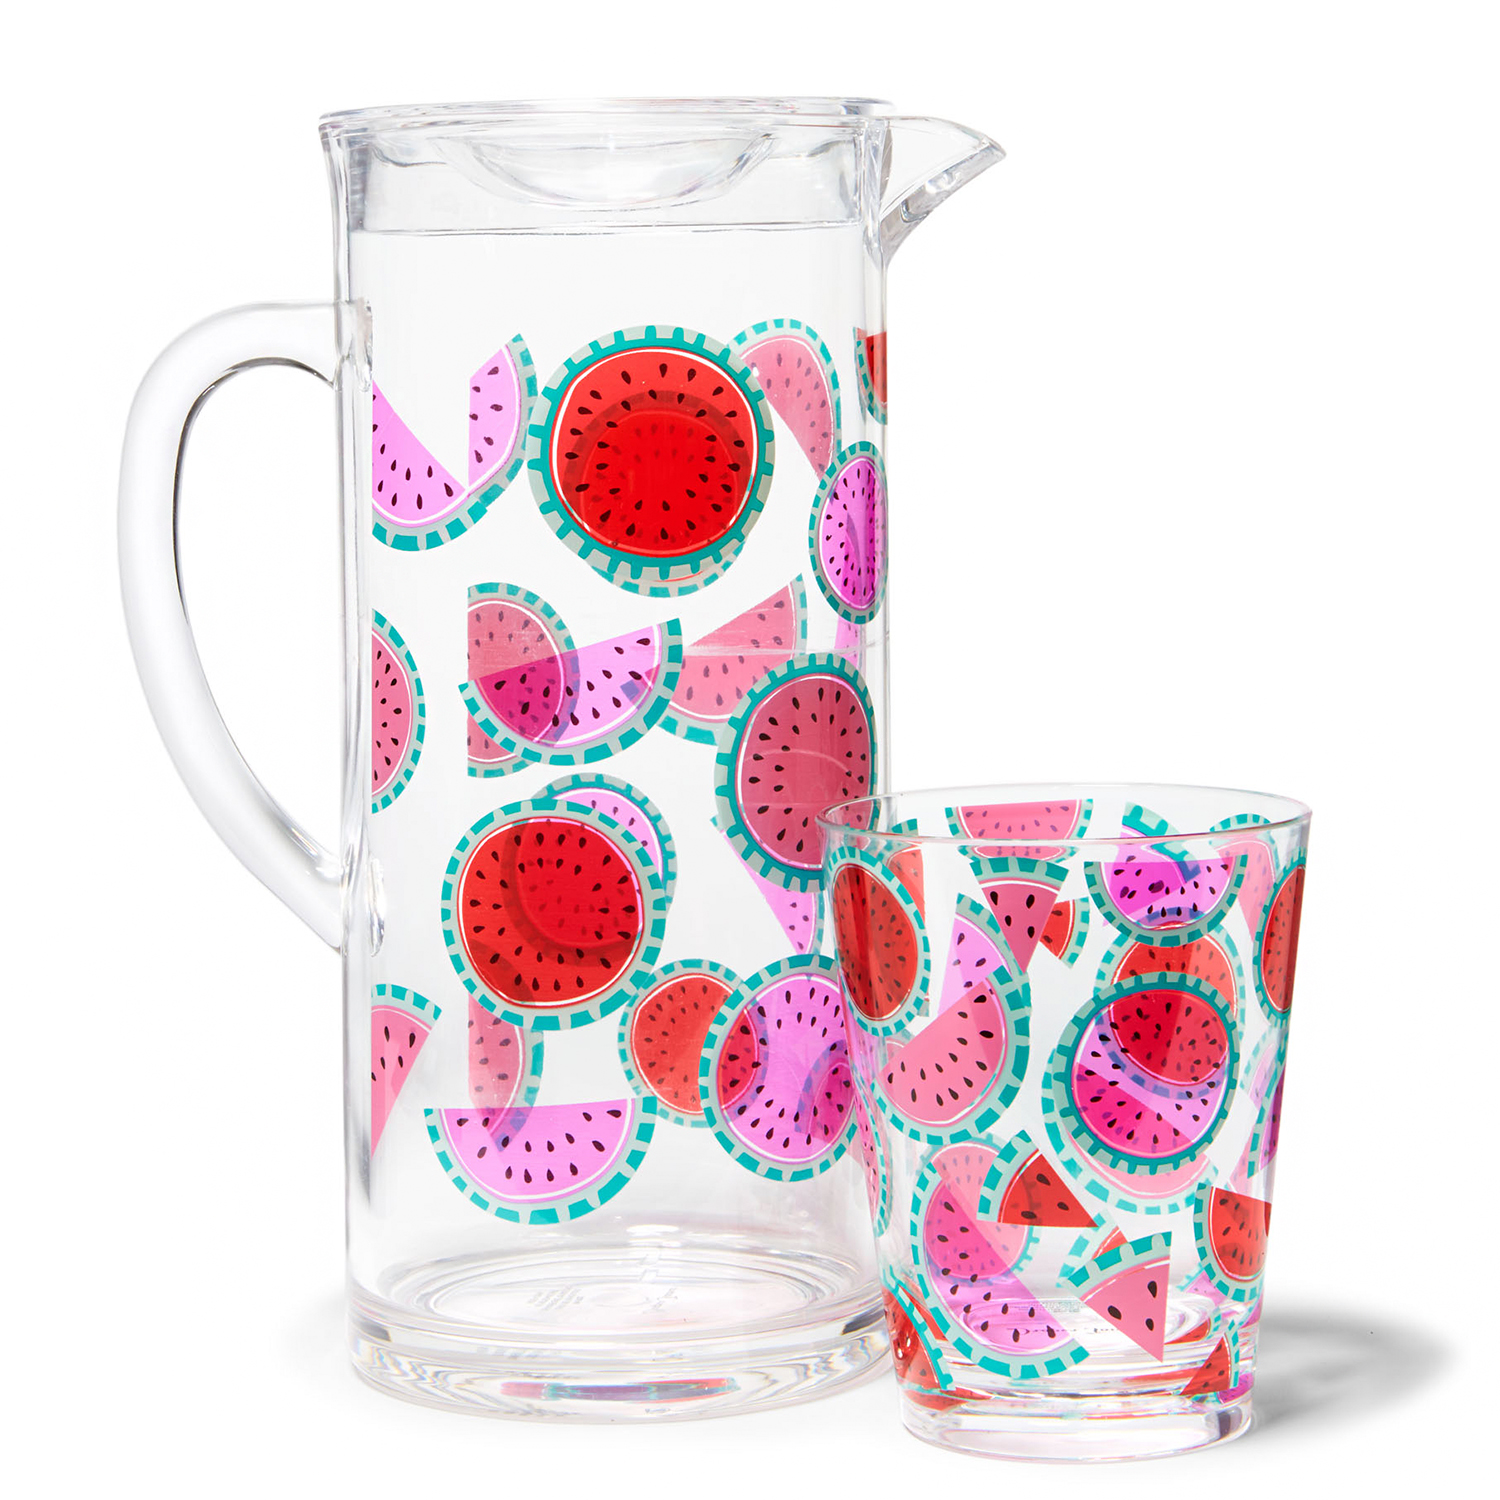 watermelon tumbler and pitcher set